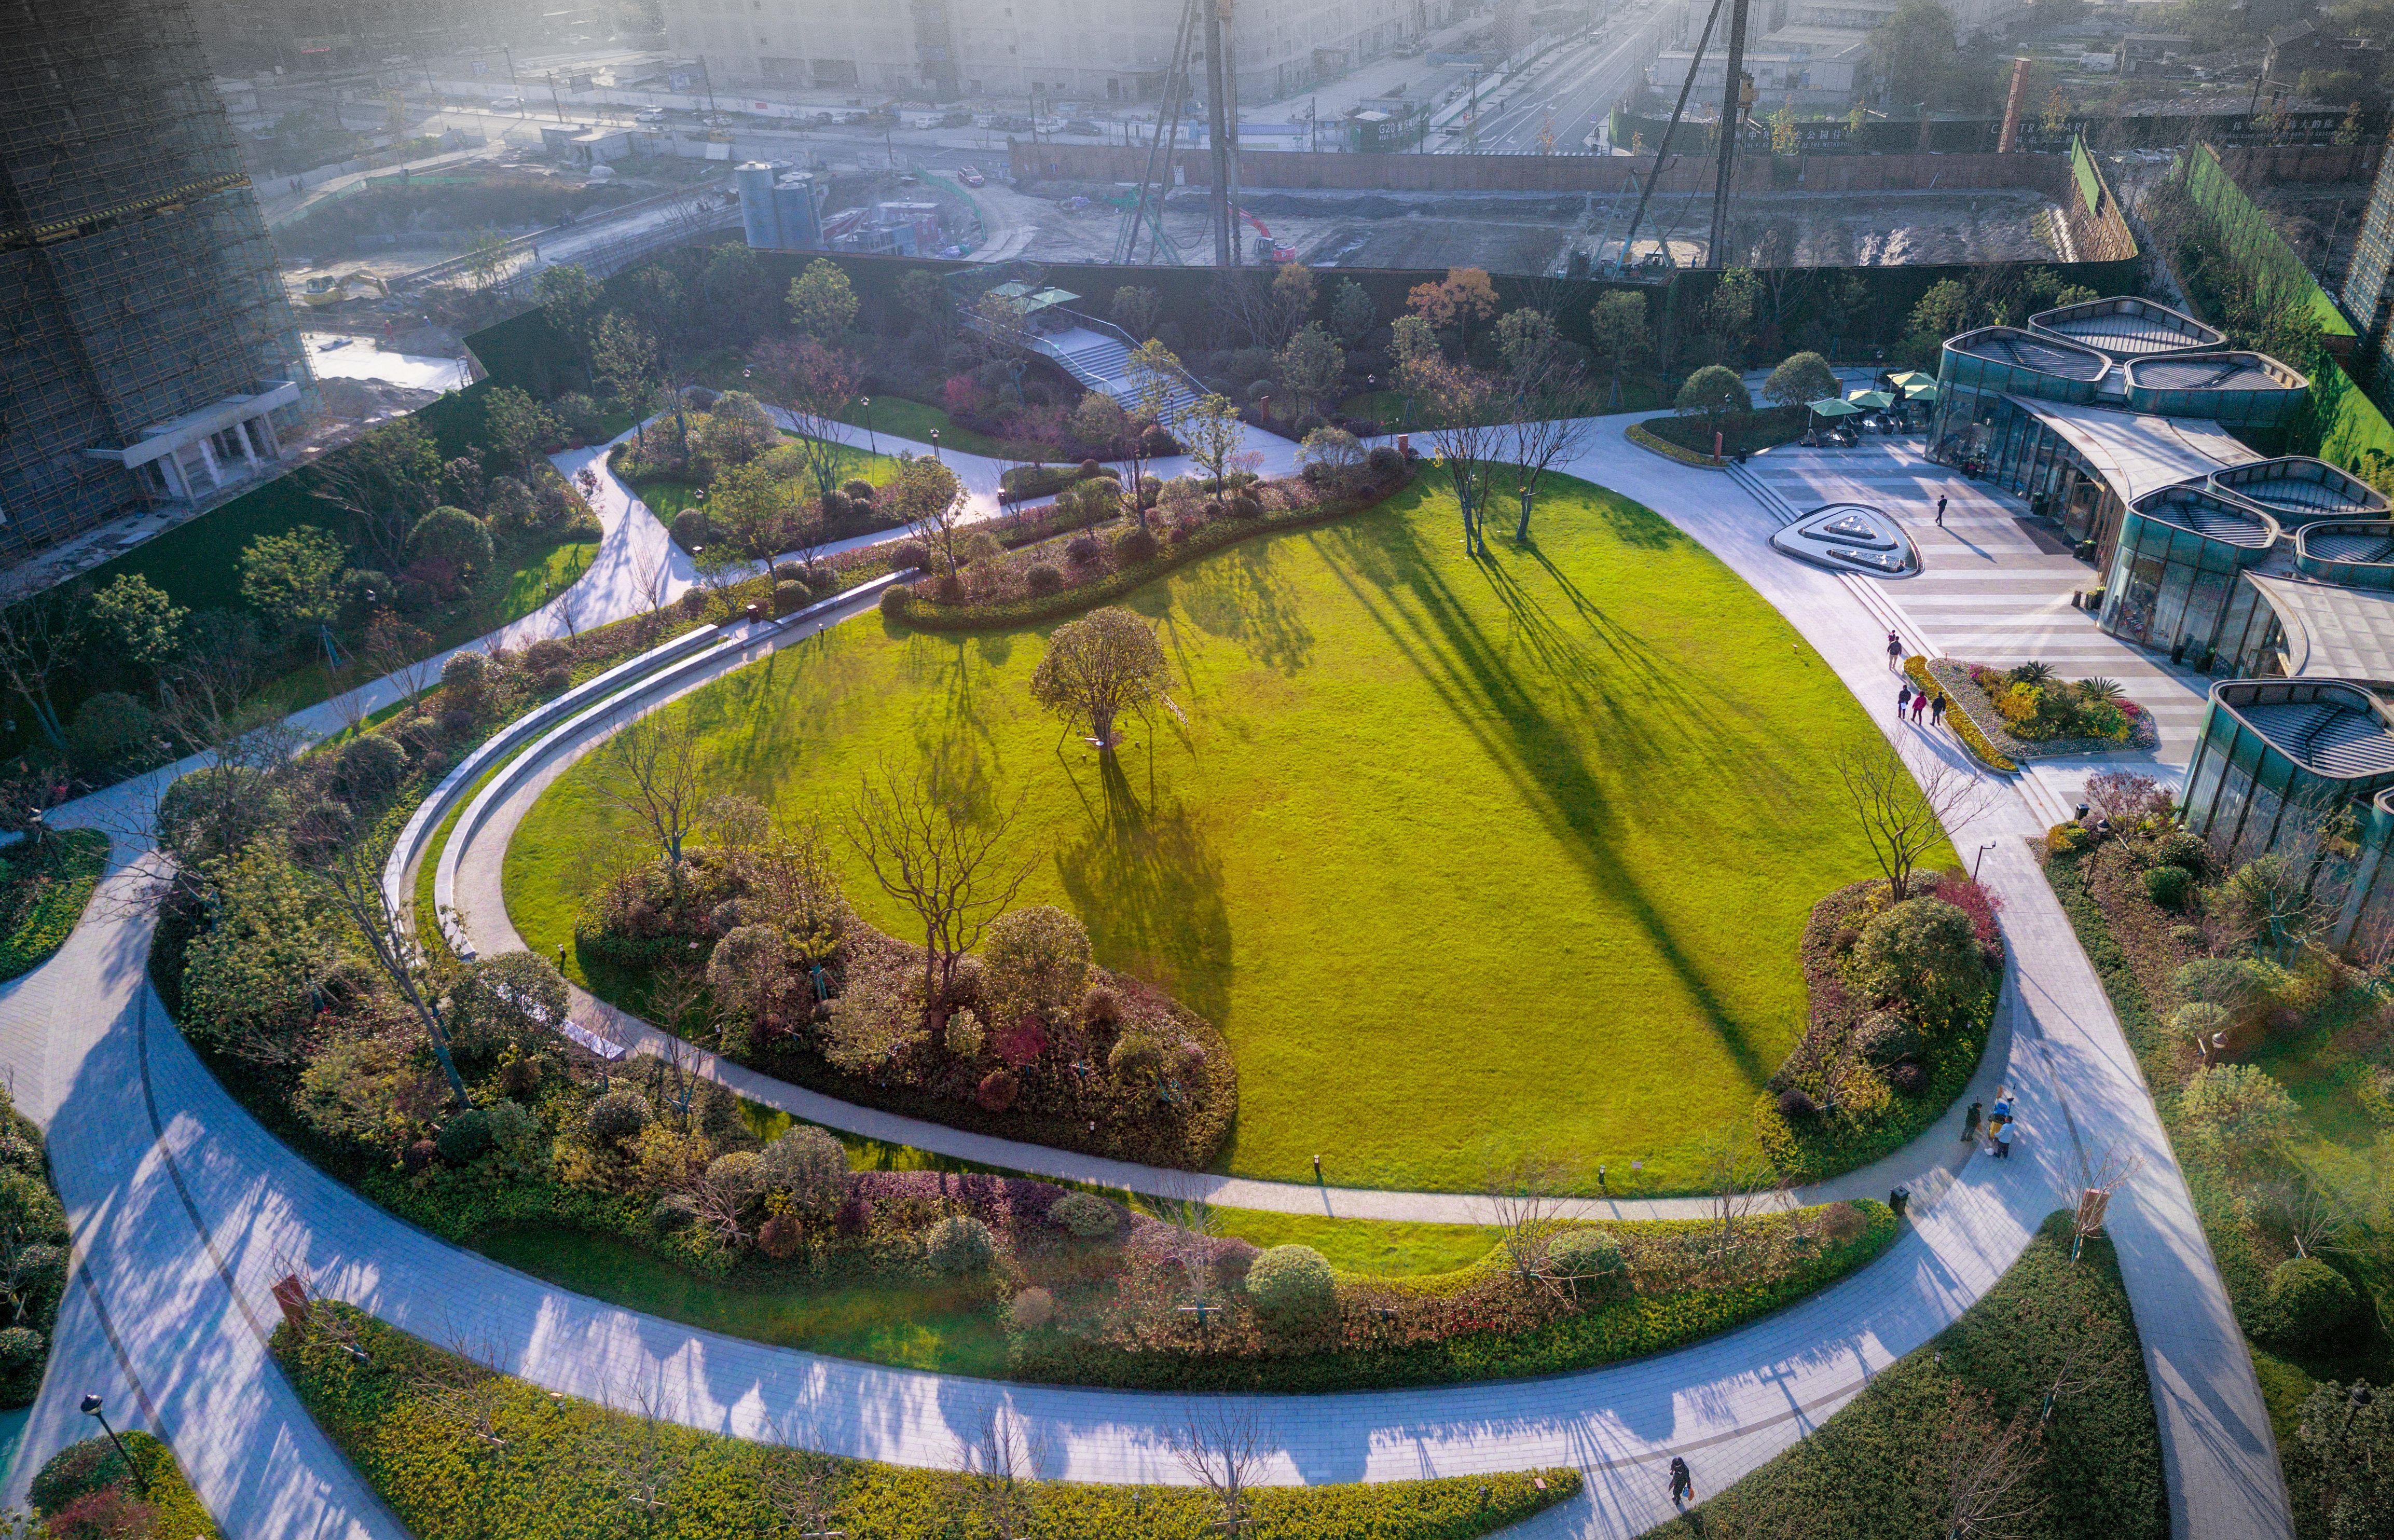 Park Residential Pengbu Central Commons Takes Advantage Of A Rare Opportunity To Establish A Park Landscape Landscape Features Landscape Architecture Design